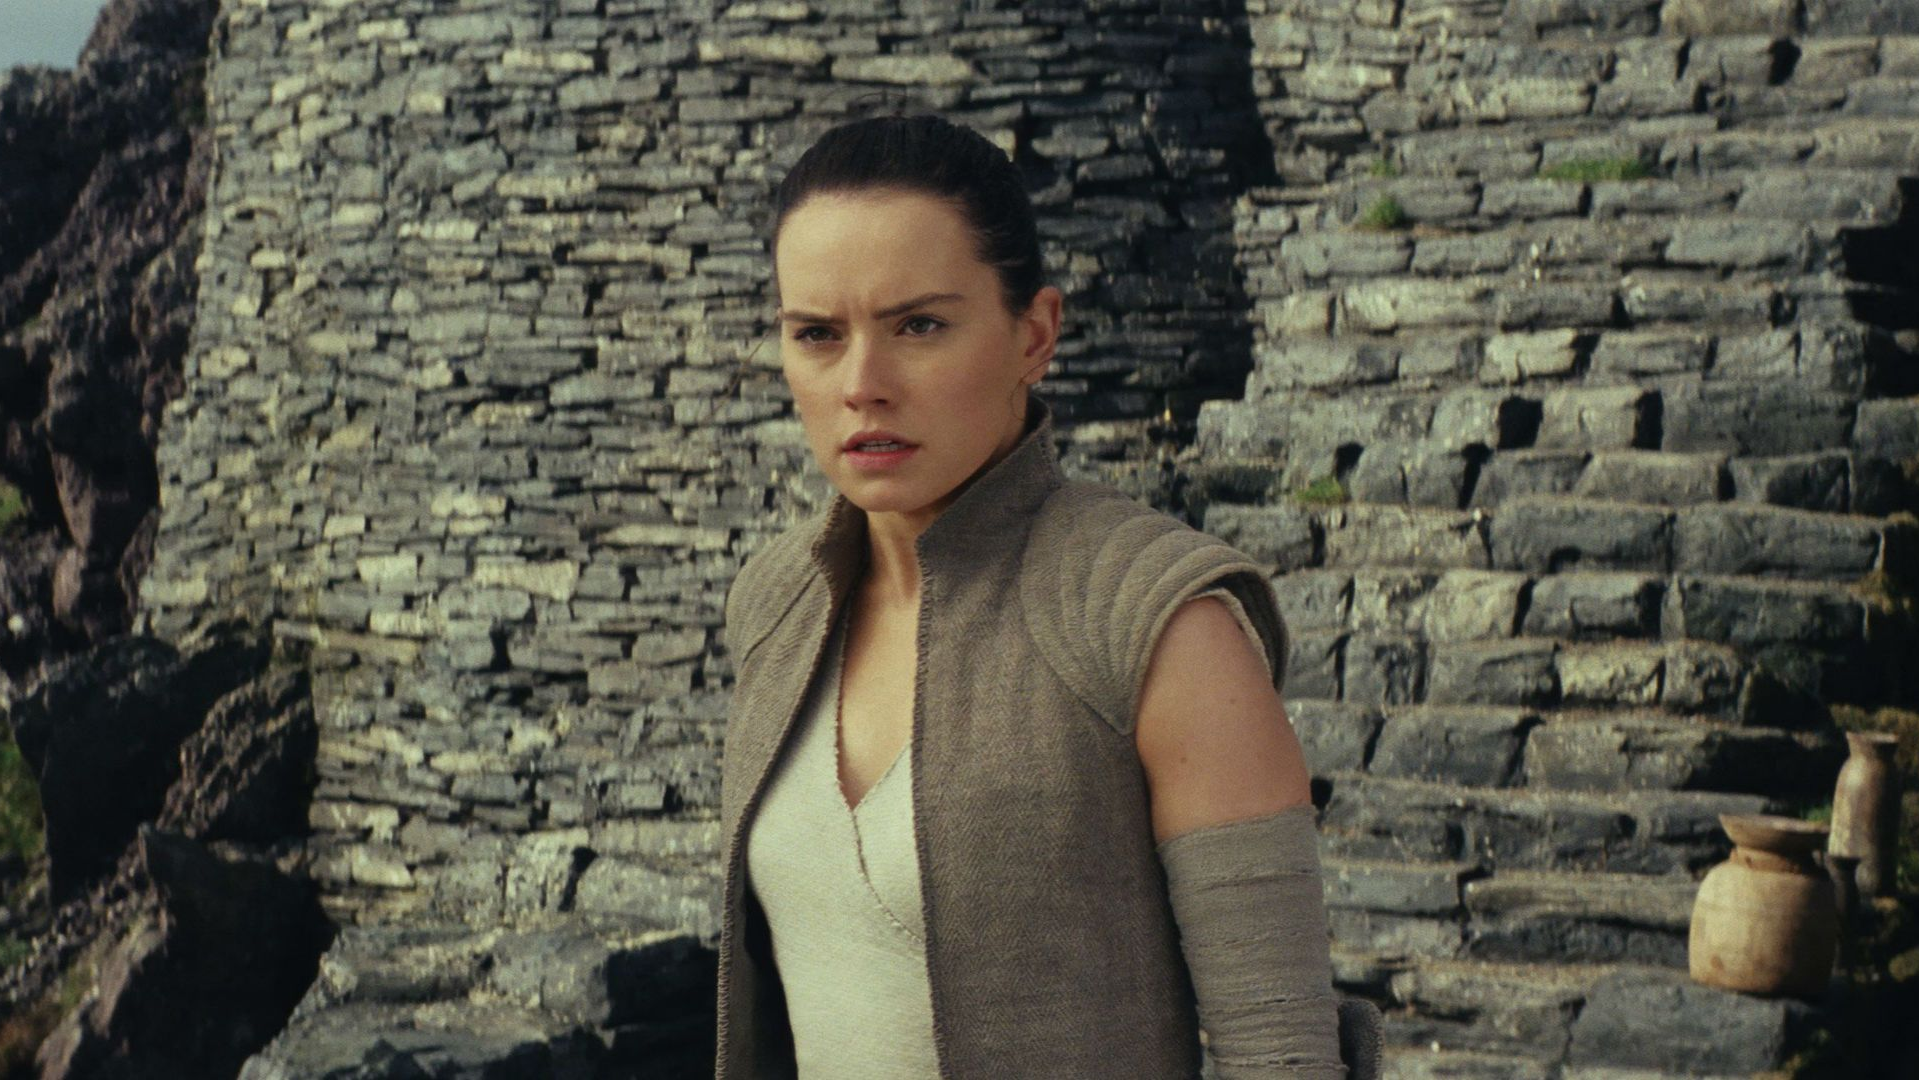 Daisy Ridley Has Some Diplomatic Thoughts About The Backlash To Star Wars: The Rise Of Skywalker